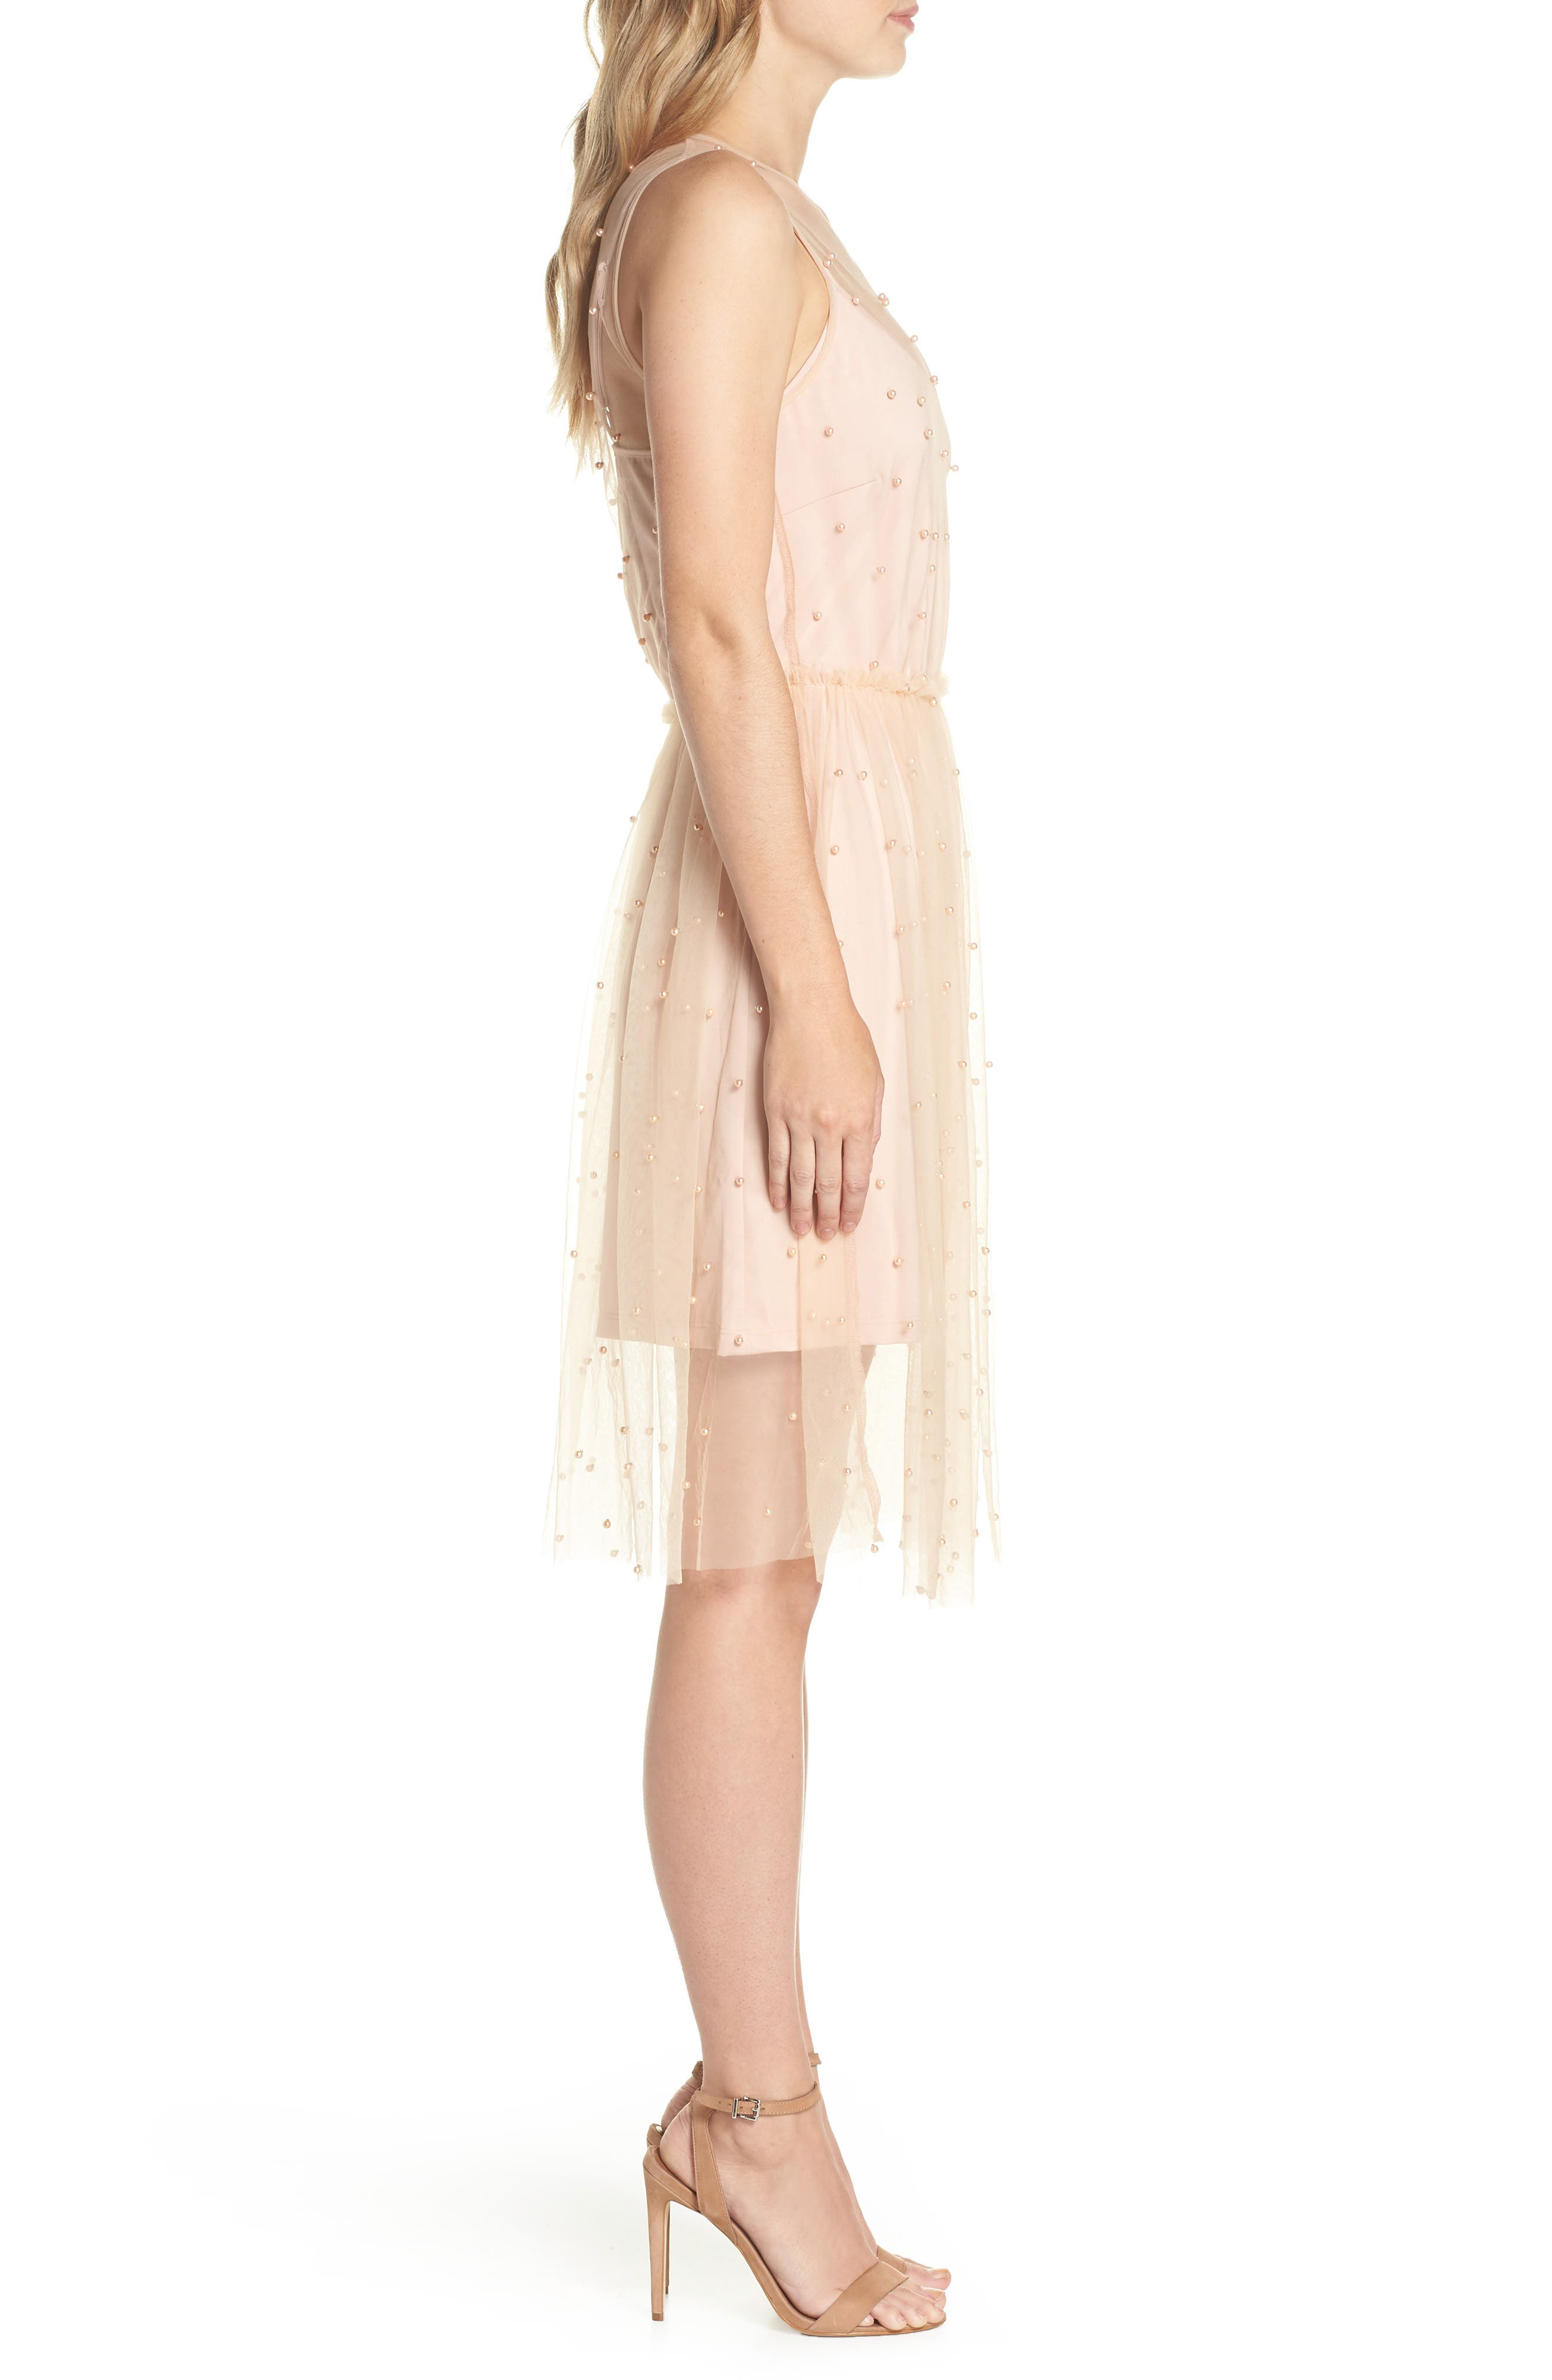 FOREST LILY,                             Imitation Pearl & Tulle Dress,                             Alternate thumbnail 3, color,                             680